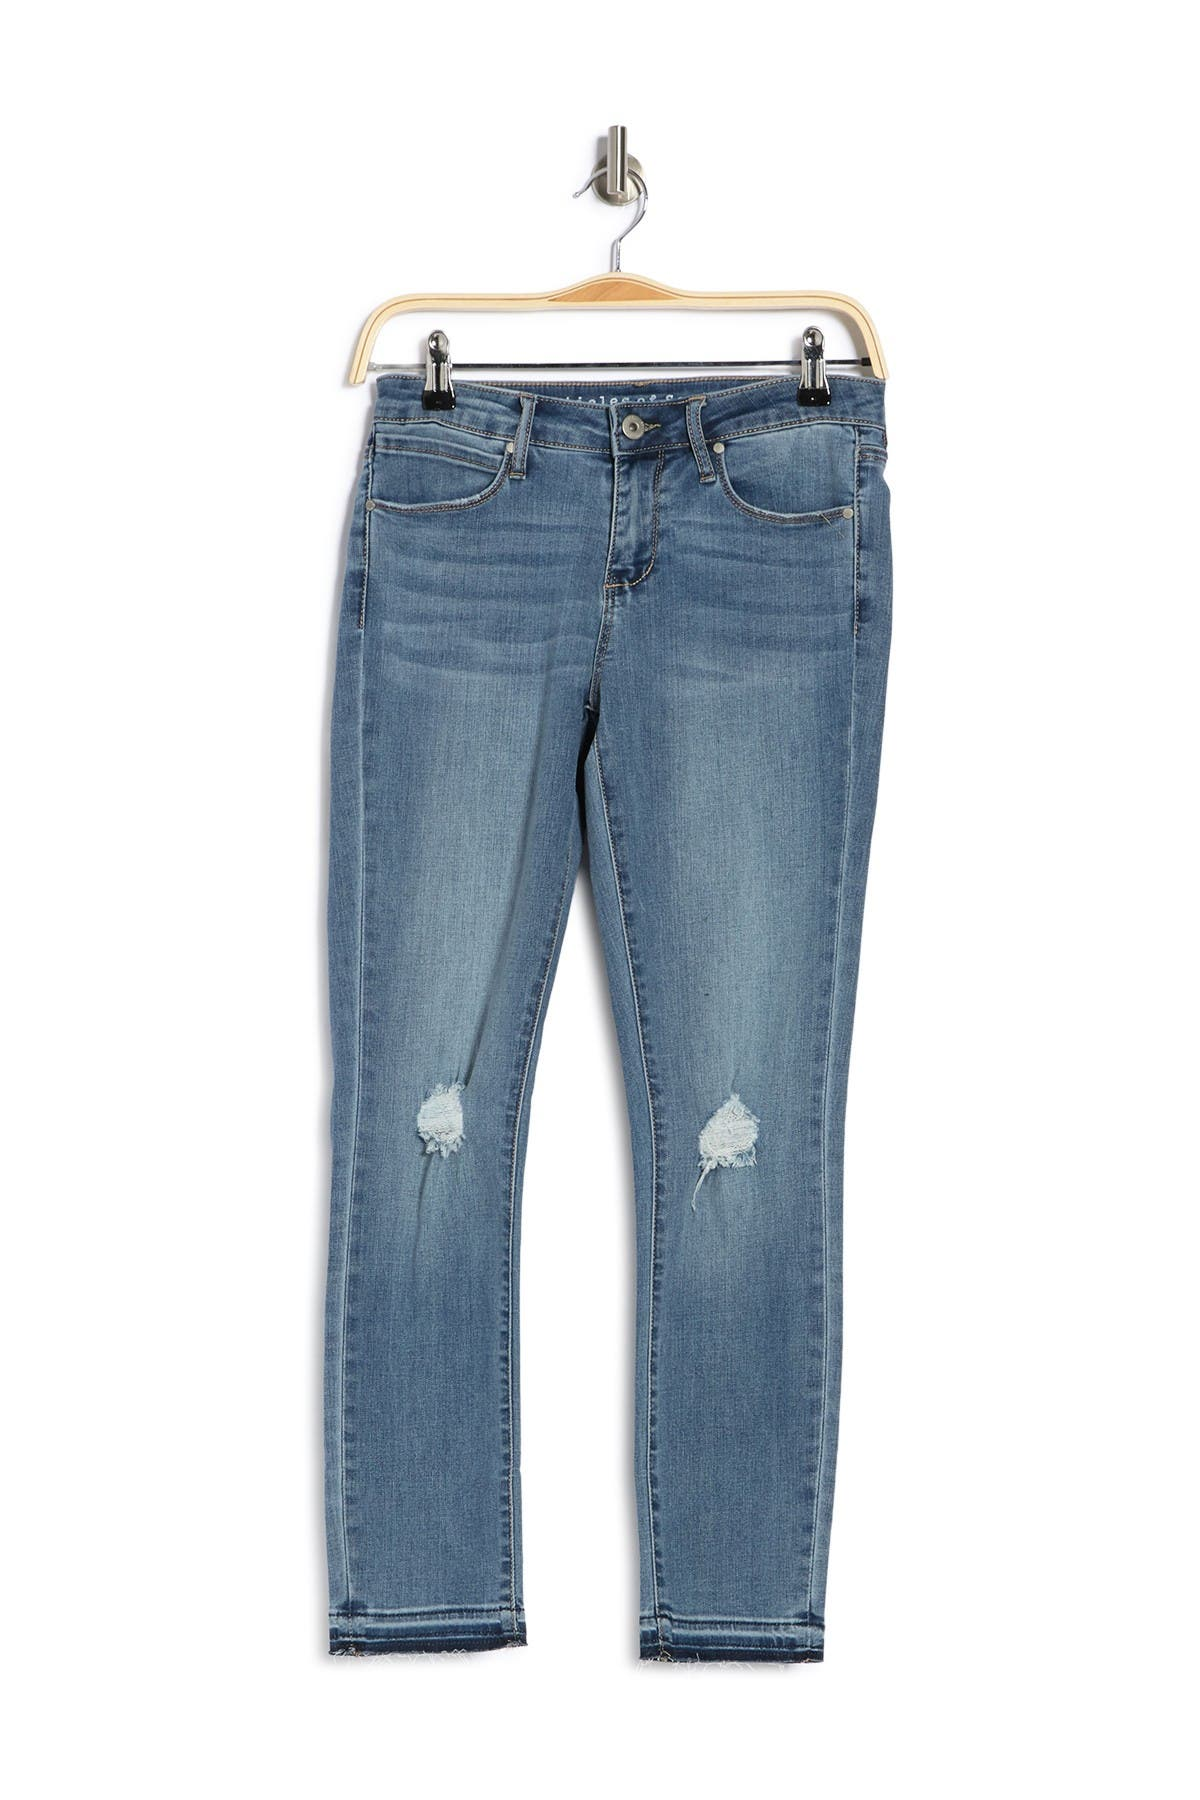 Image of Articles of Society Carly Cropped Jean